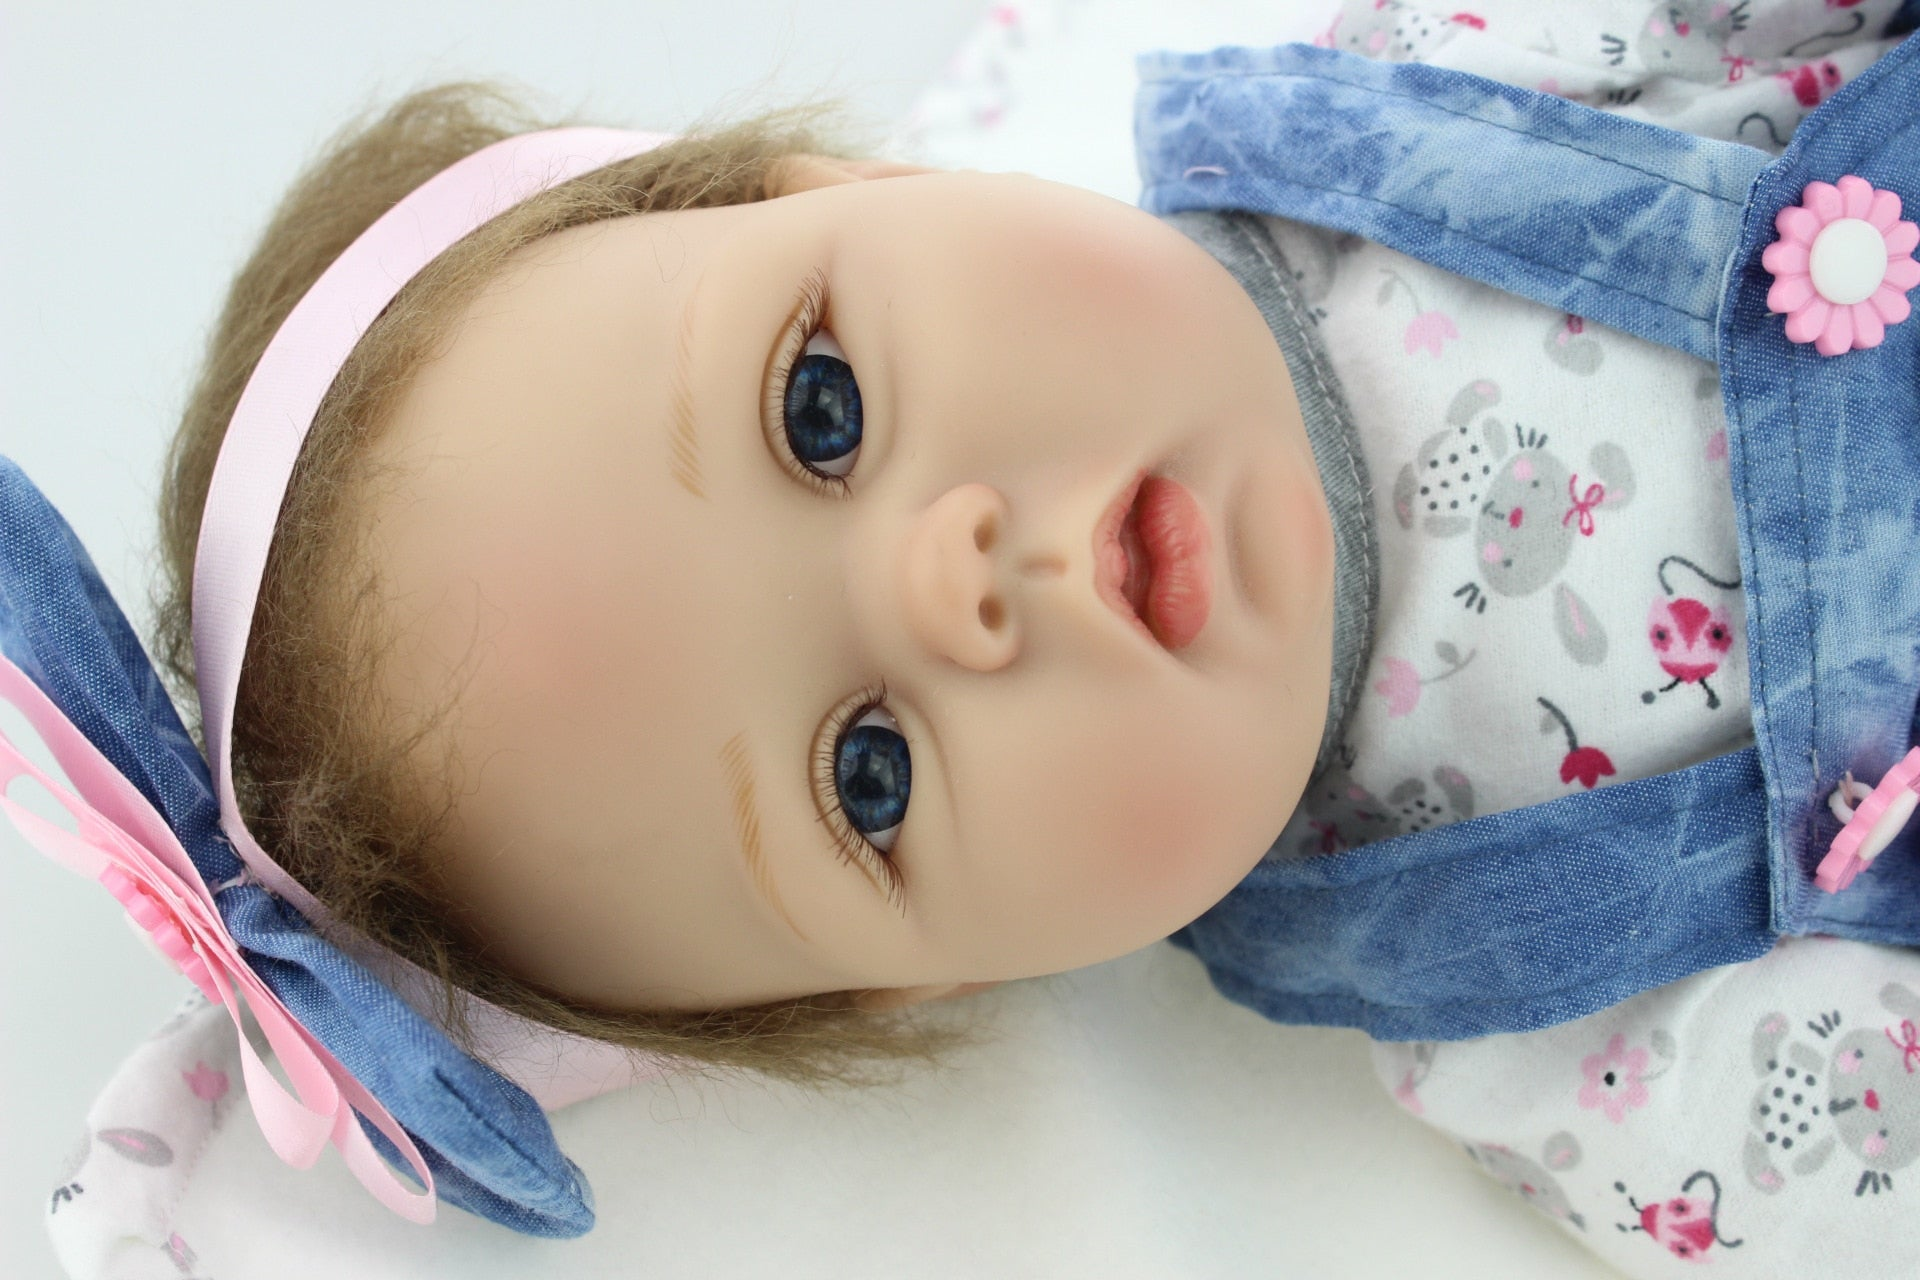 reborn toddler girl high quality reborn toddler princess girl doll Silicone vinyl adorable Lifelike Baby Bonecas girl bebe doll